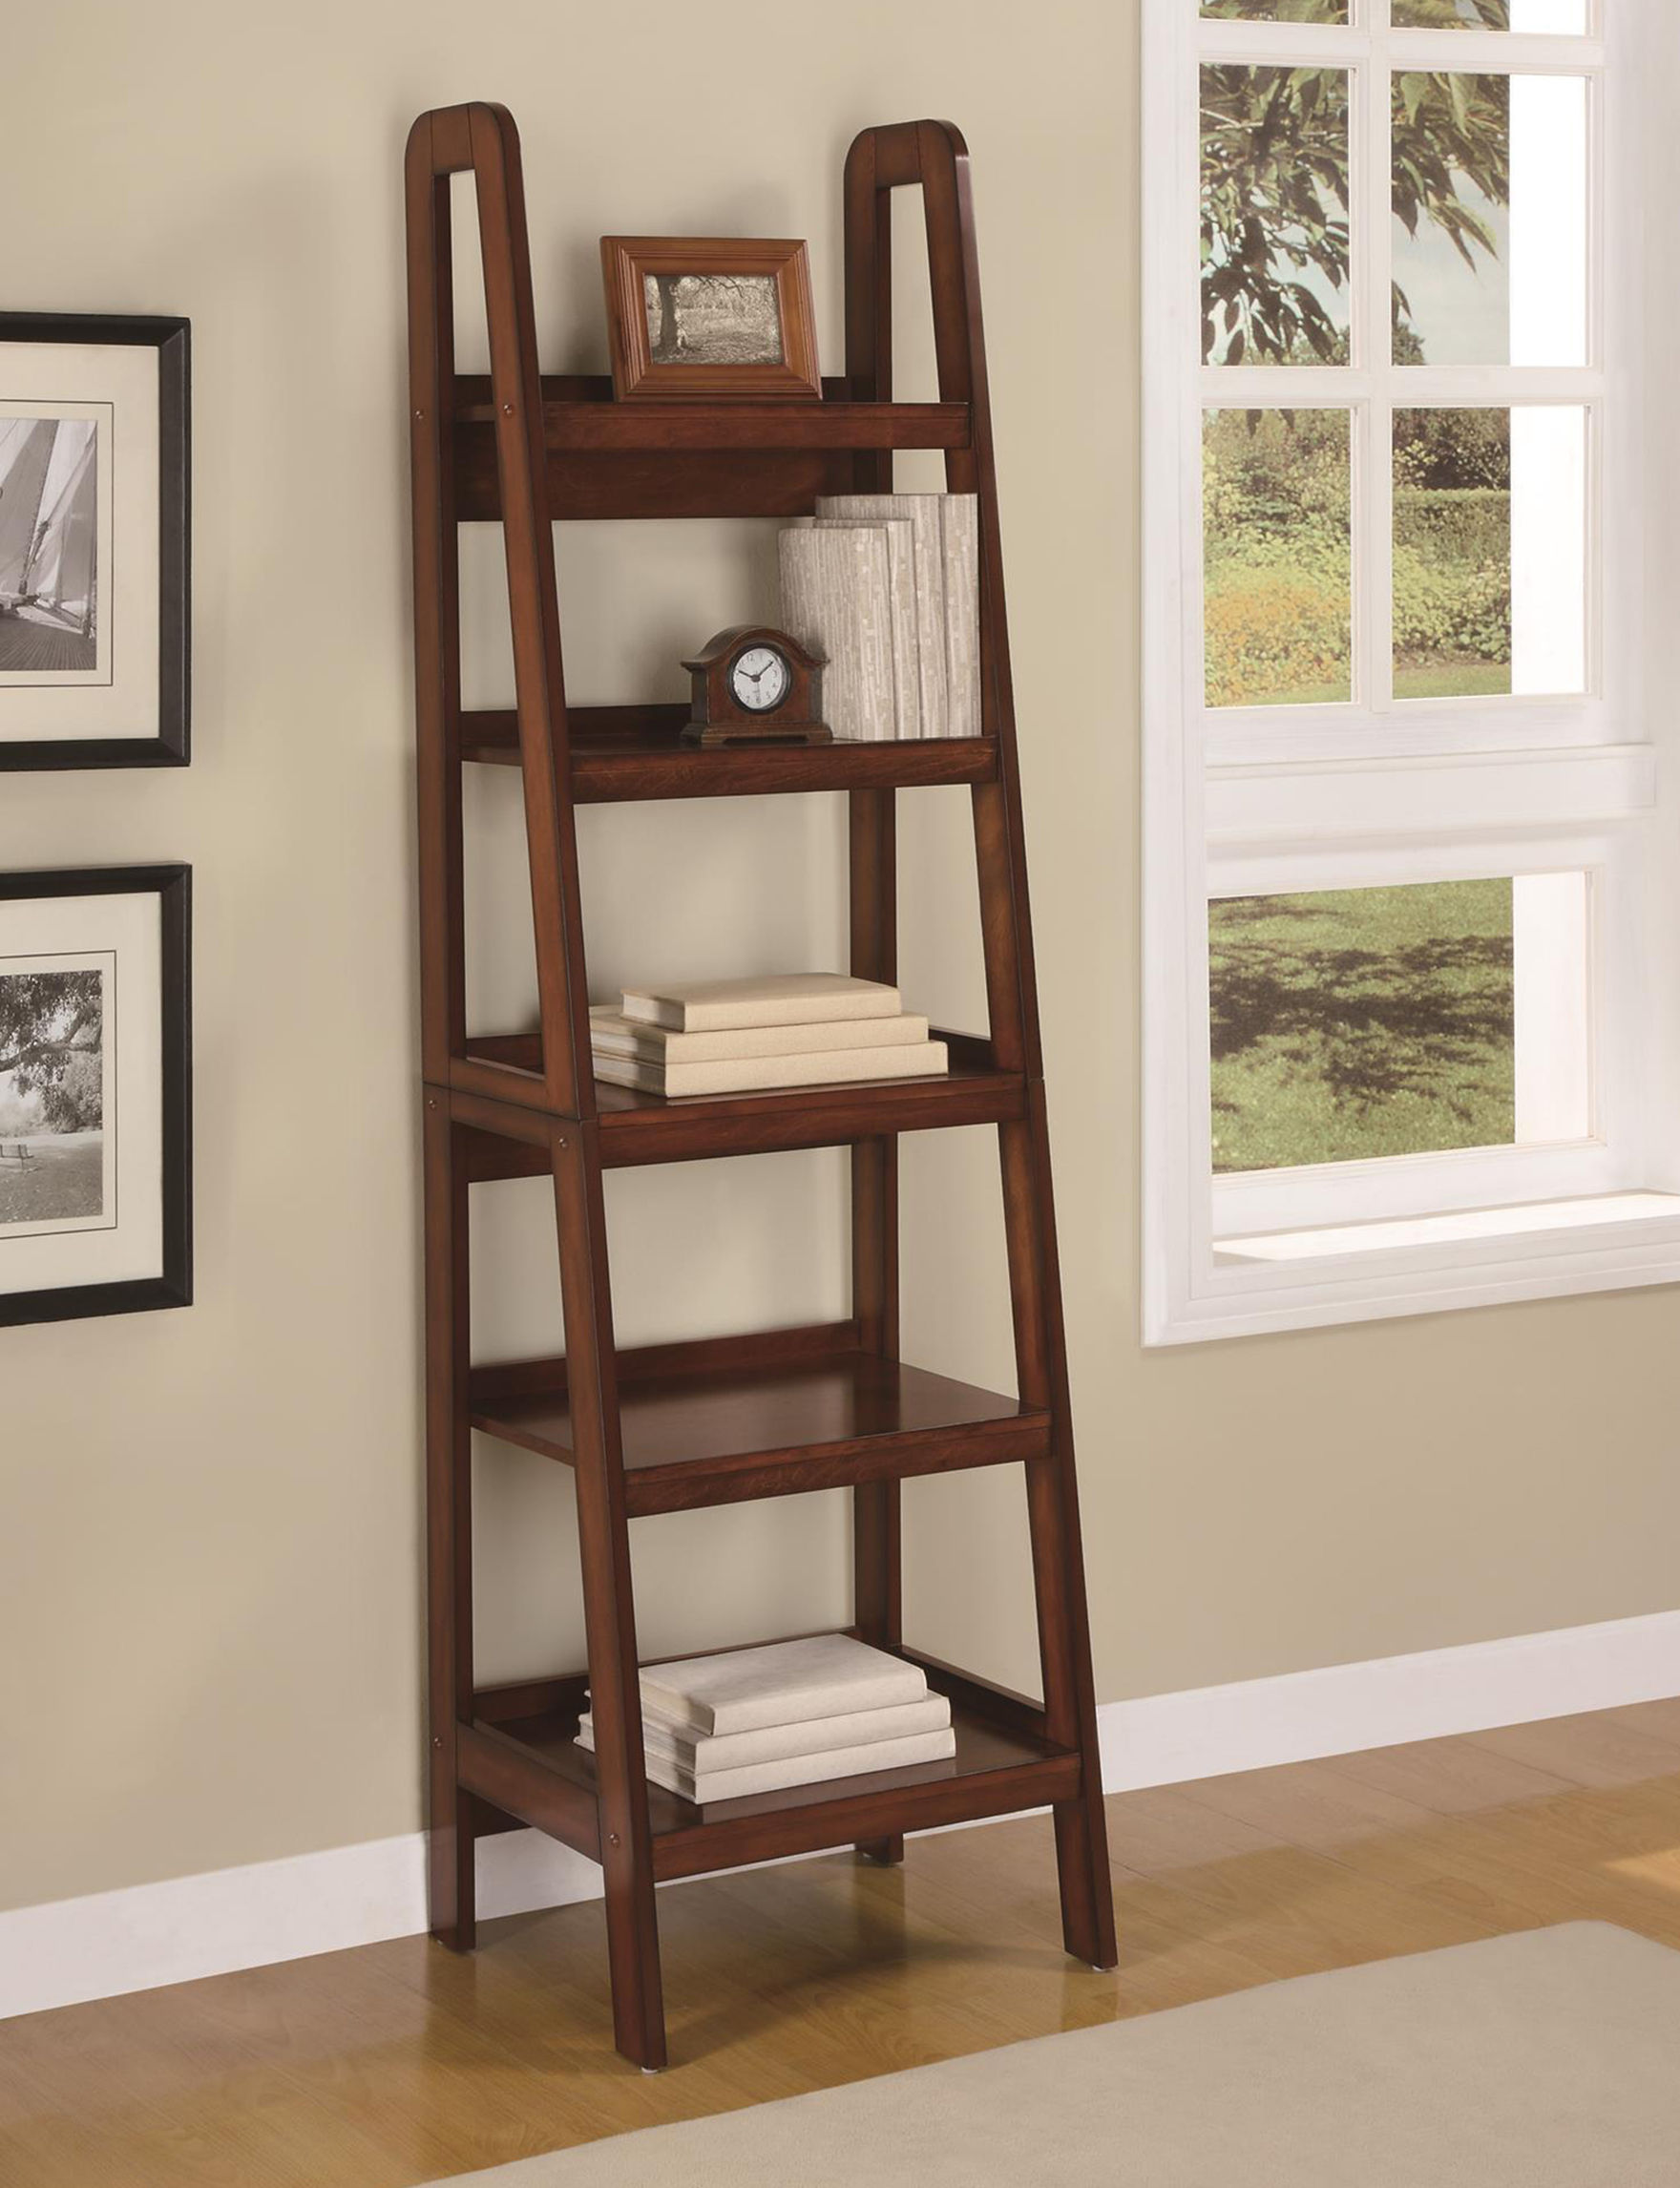 Ameriwood Espresso Bookcases & Shelves Home Office Furniture Living Room Furniture